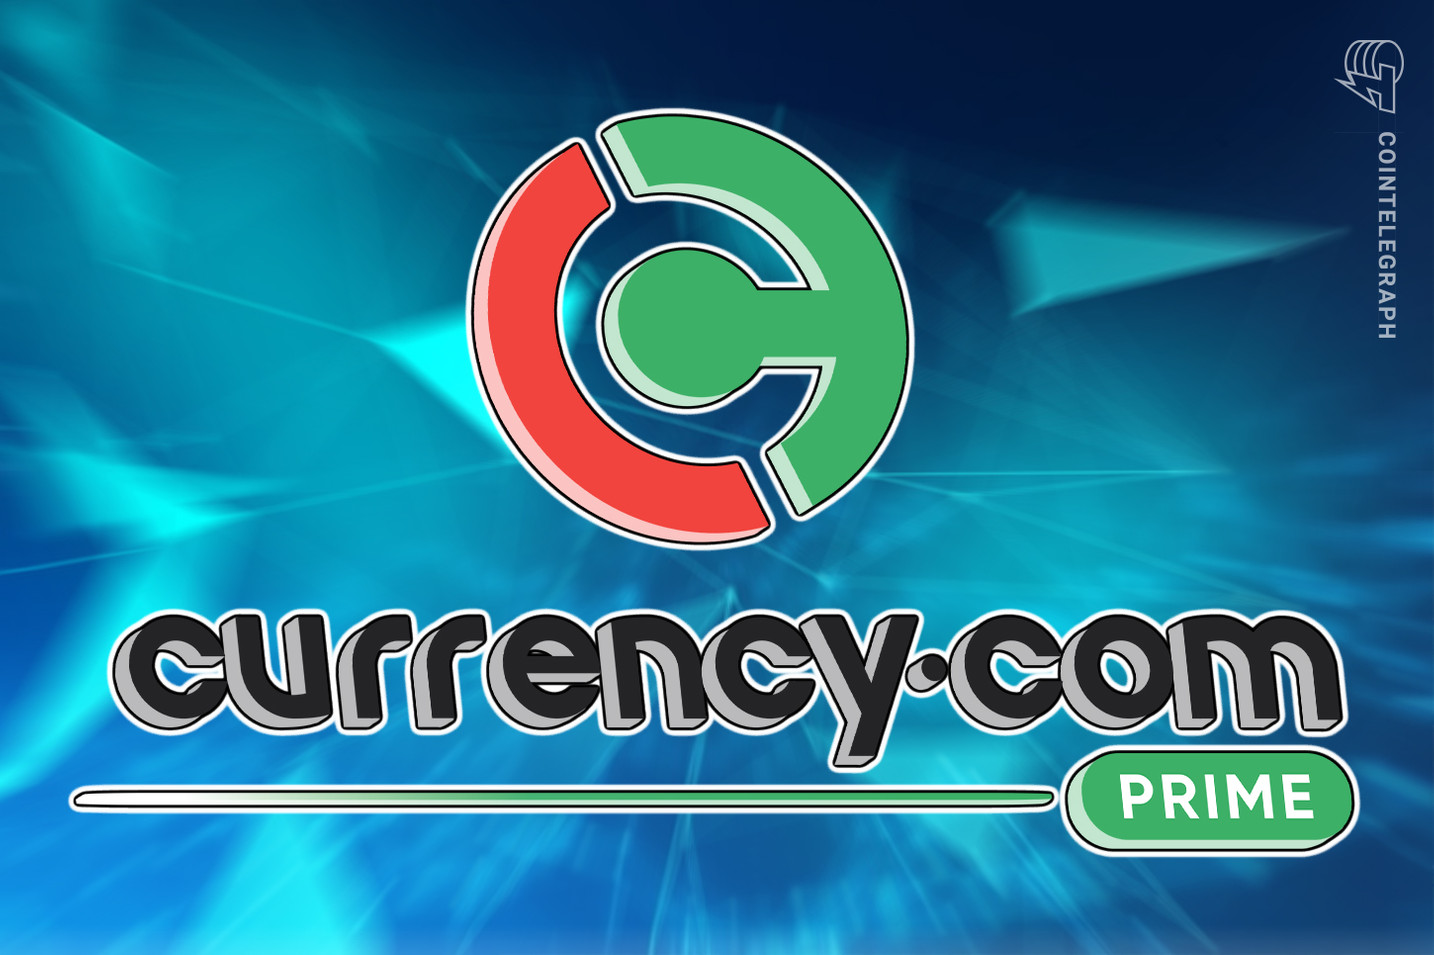 Currency.com launches personalised OTC crypto trading service